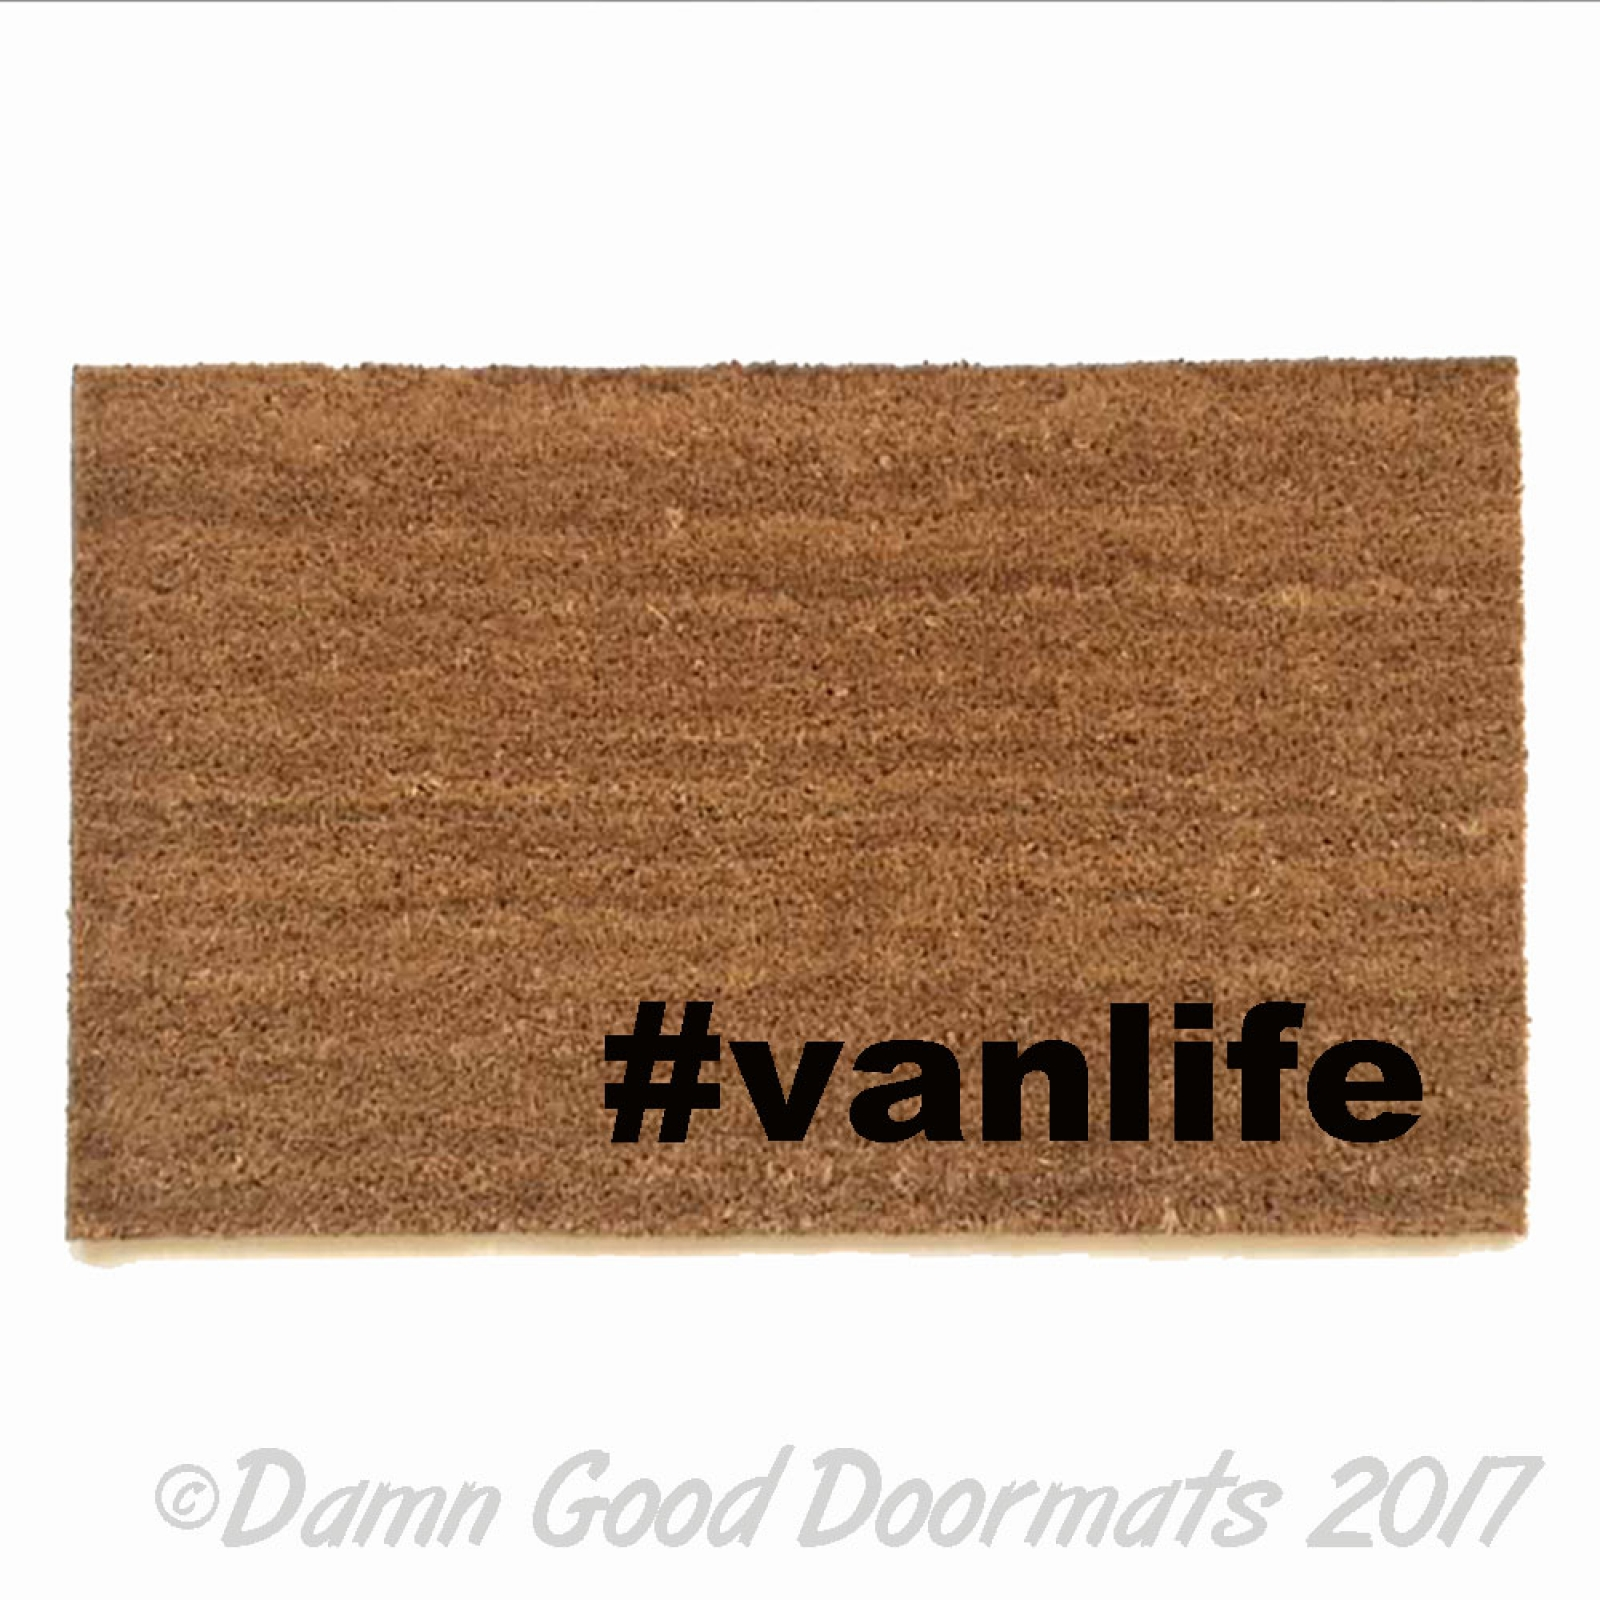 Vanlife Funny Rude Doormat Damn Good Doormats